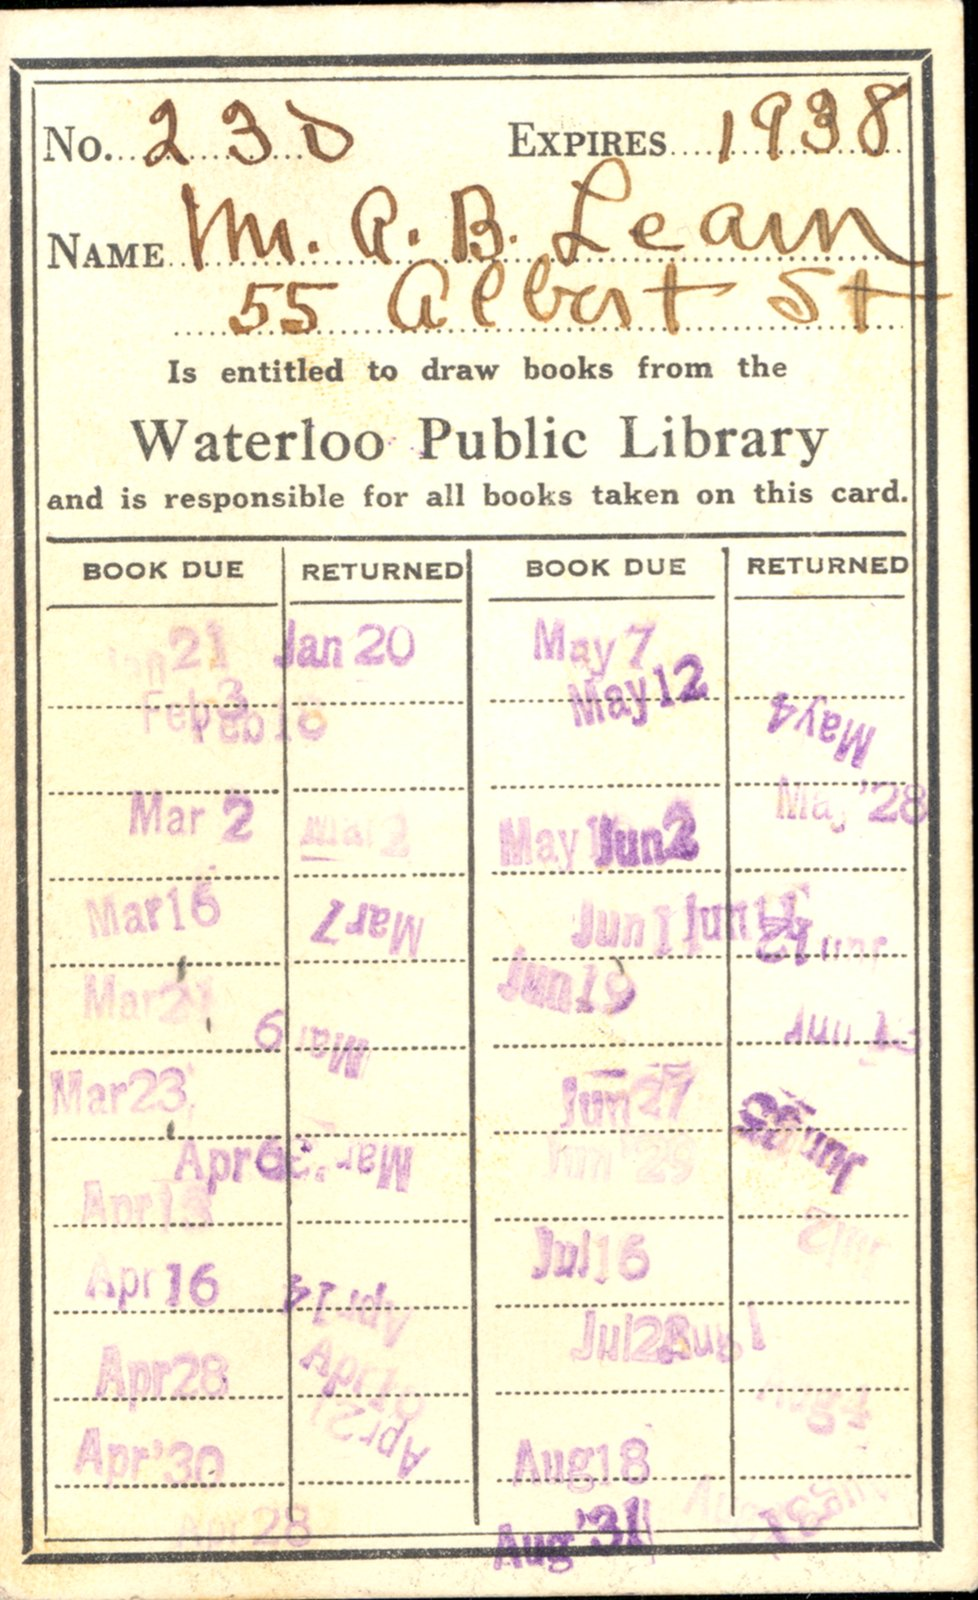 Waterloo Public Library Card, 1938